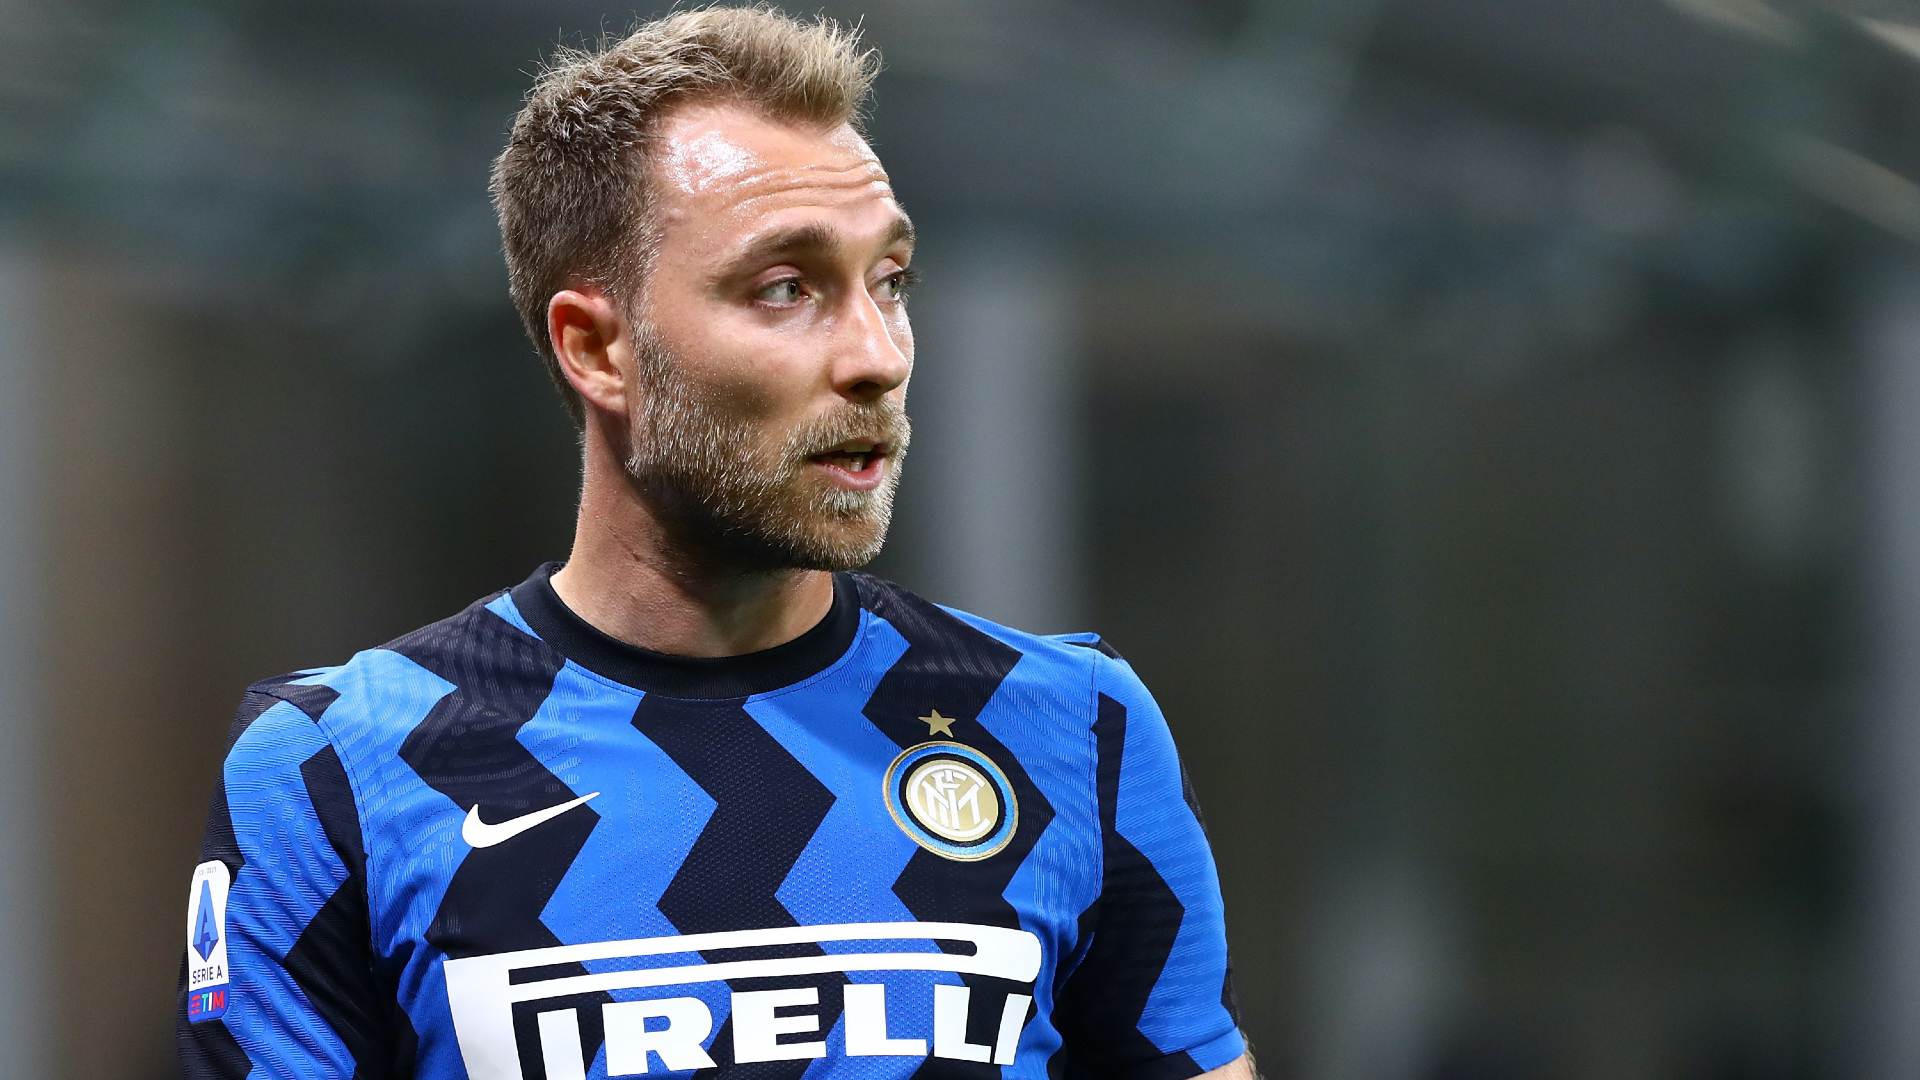 Transfer news and rumours LIVE: Arsenal could land Eriksen for just £12m